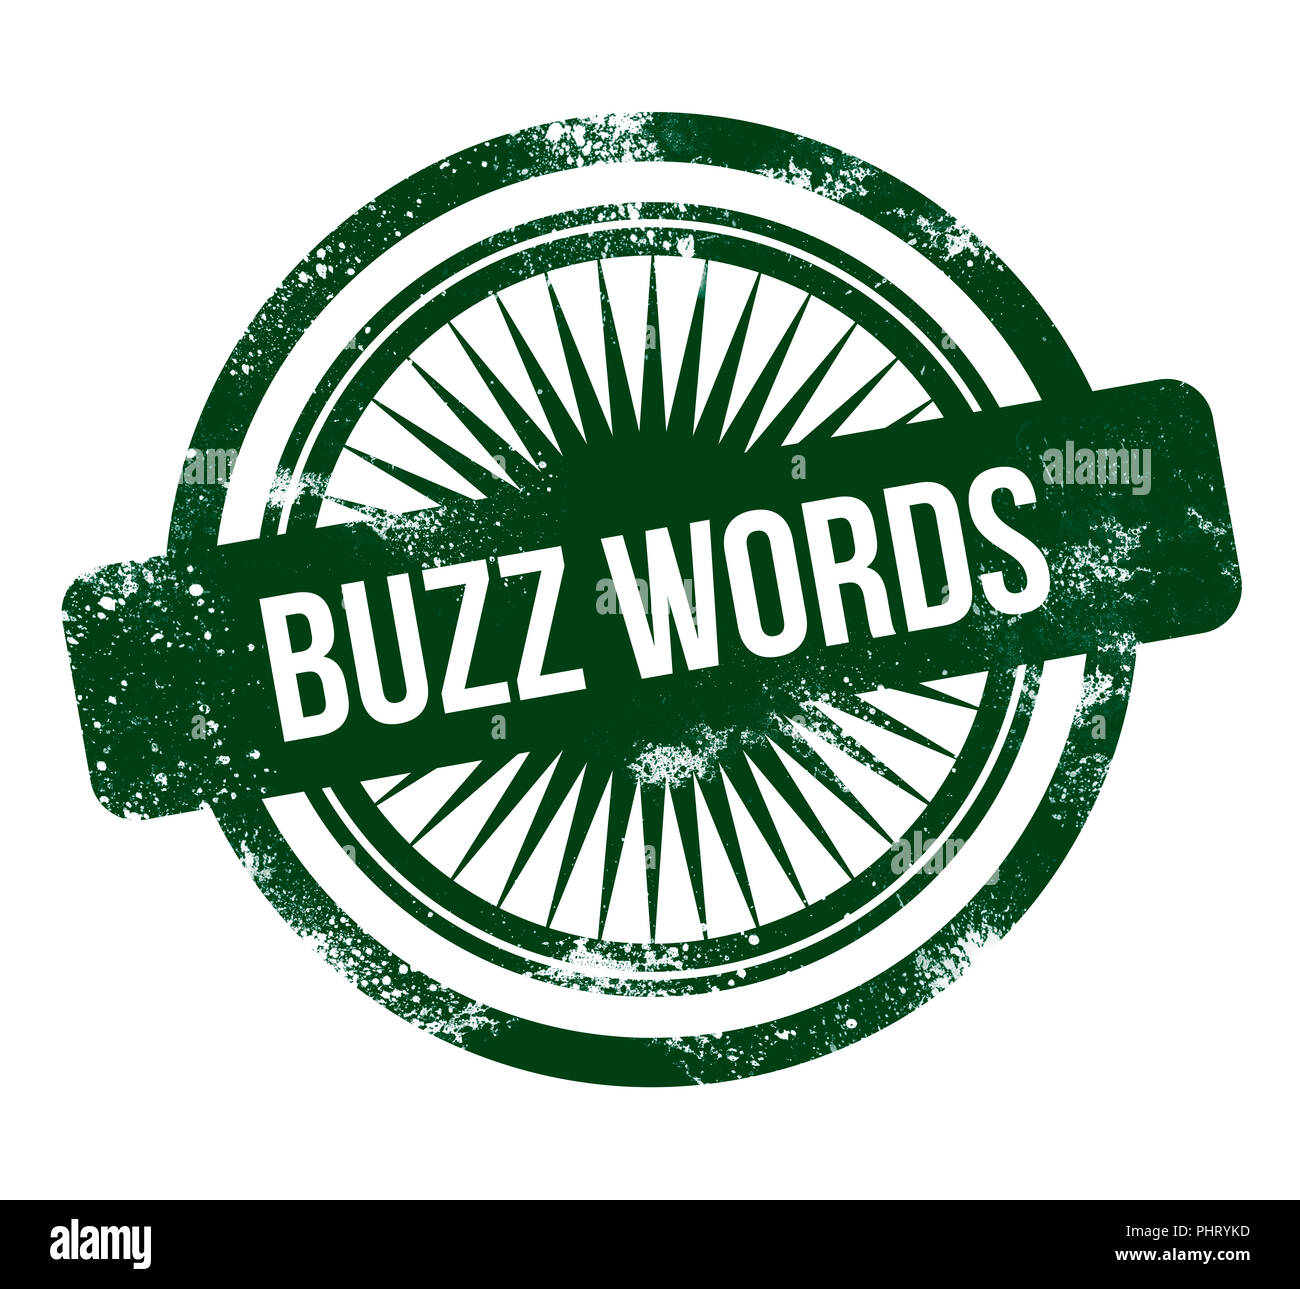 buzz words - green grunge stamp - Stock Image